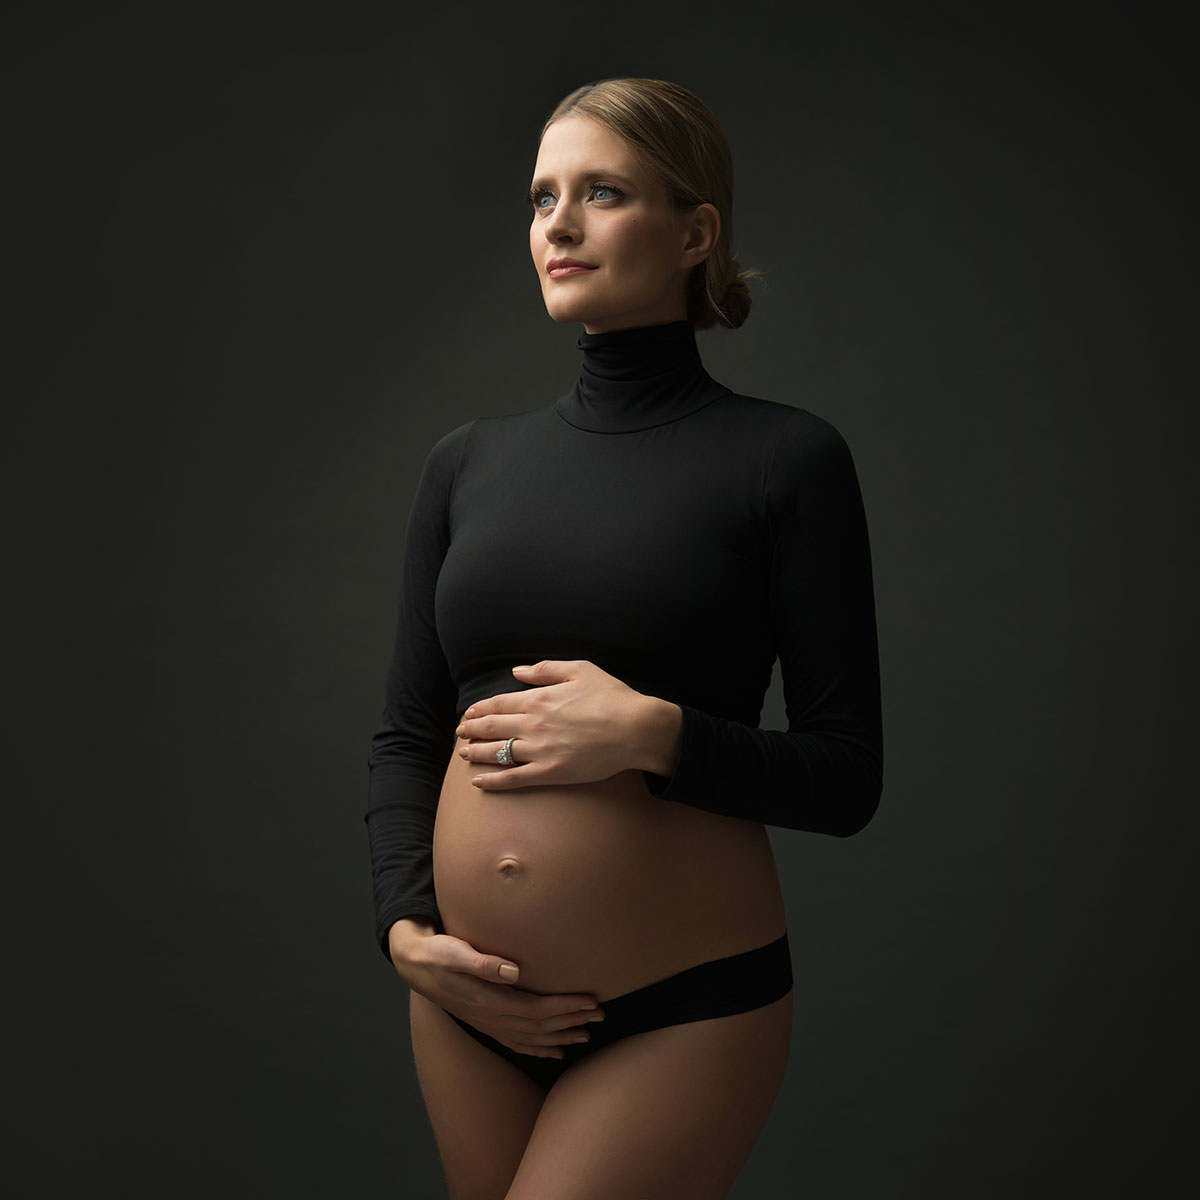 Pregnant woman cradling her belly for a maternity portrait